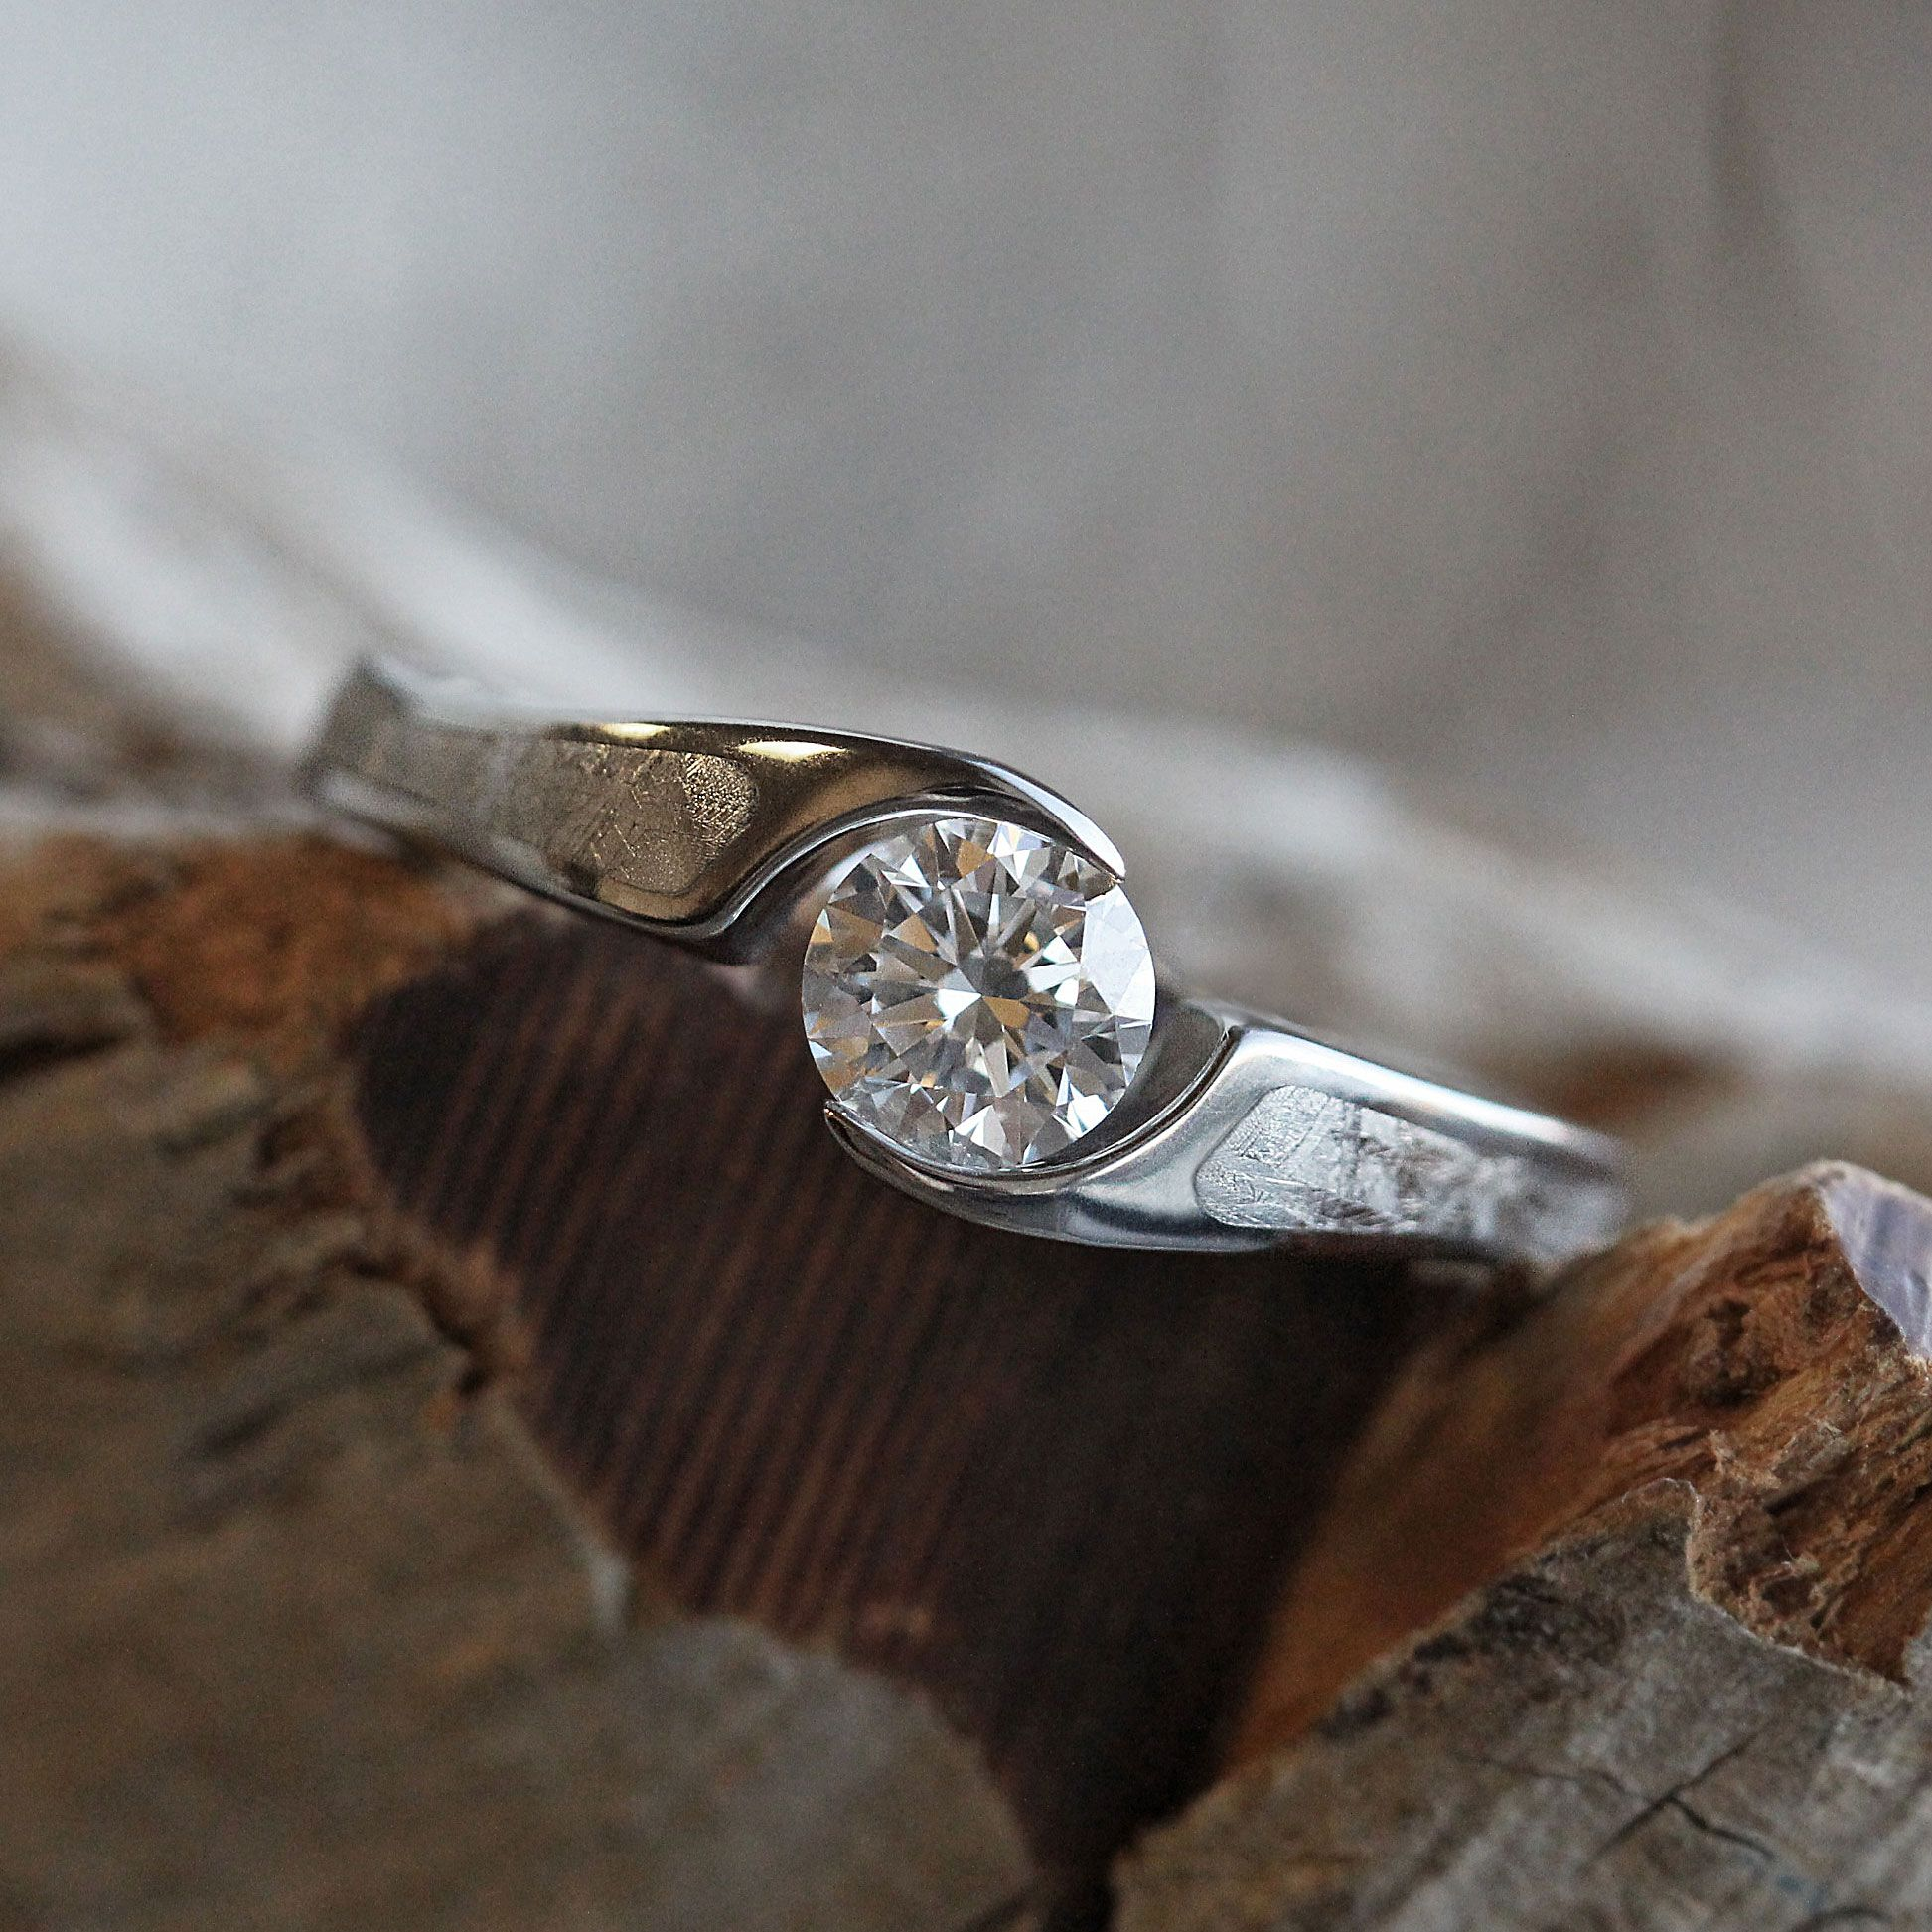 martinvseticka rings custom hand alchemist by made tension czech rough set diamond